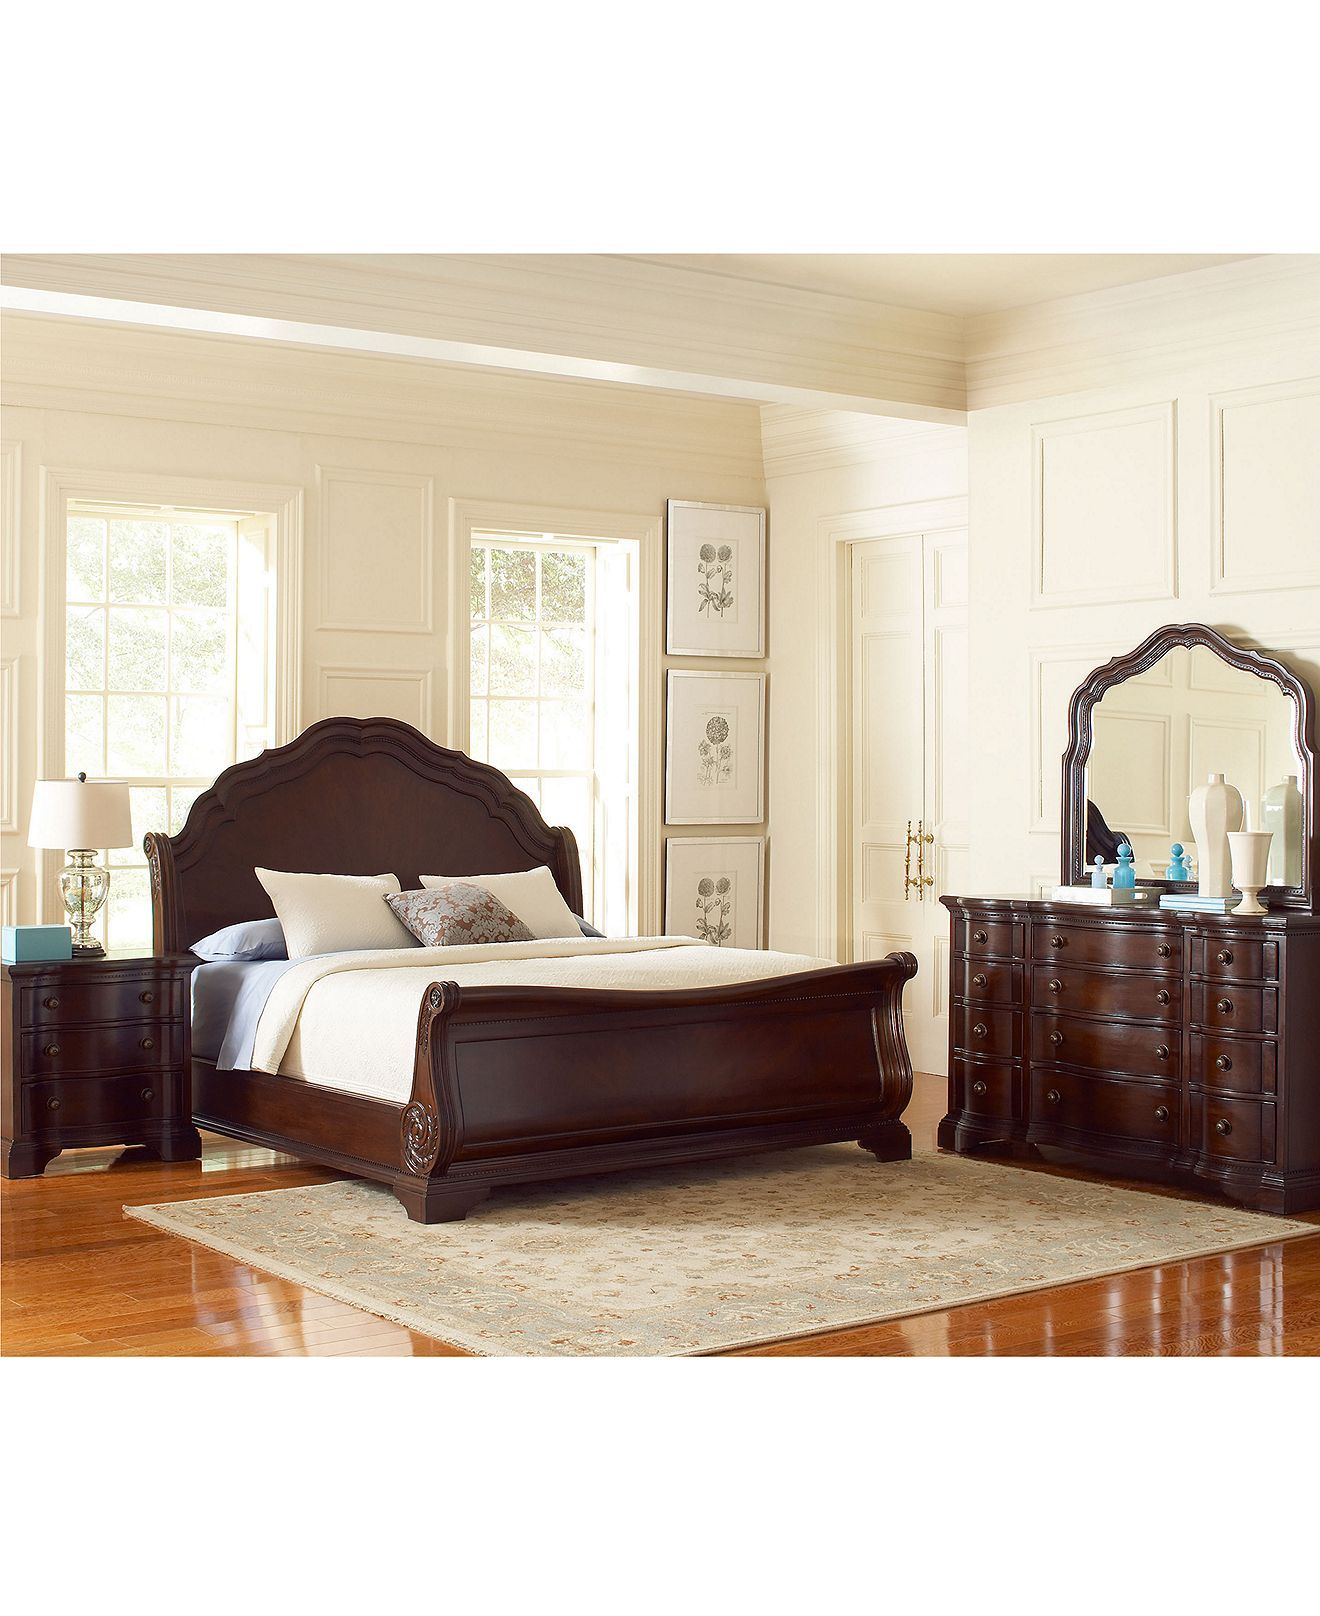 Celine Bedroom Furniture Sets U0026 Pieces   Furniture   Macyu0027s